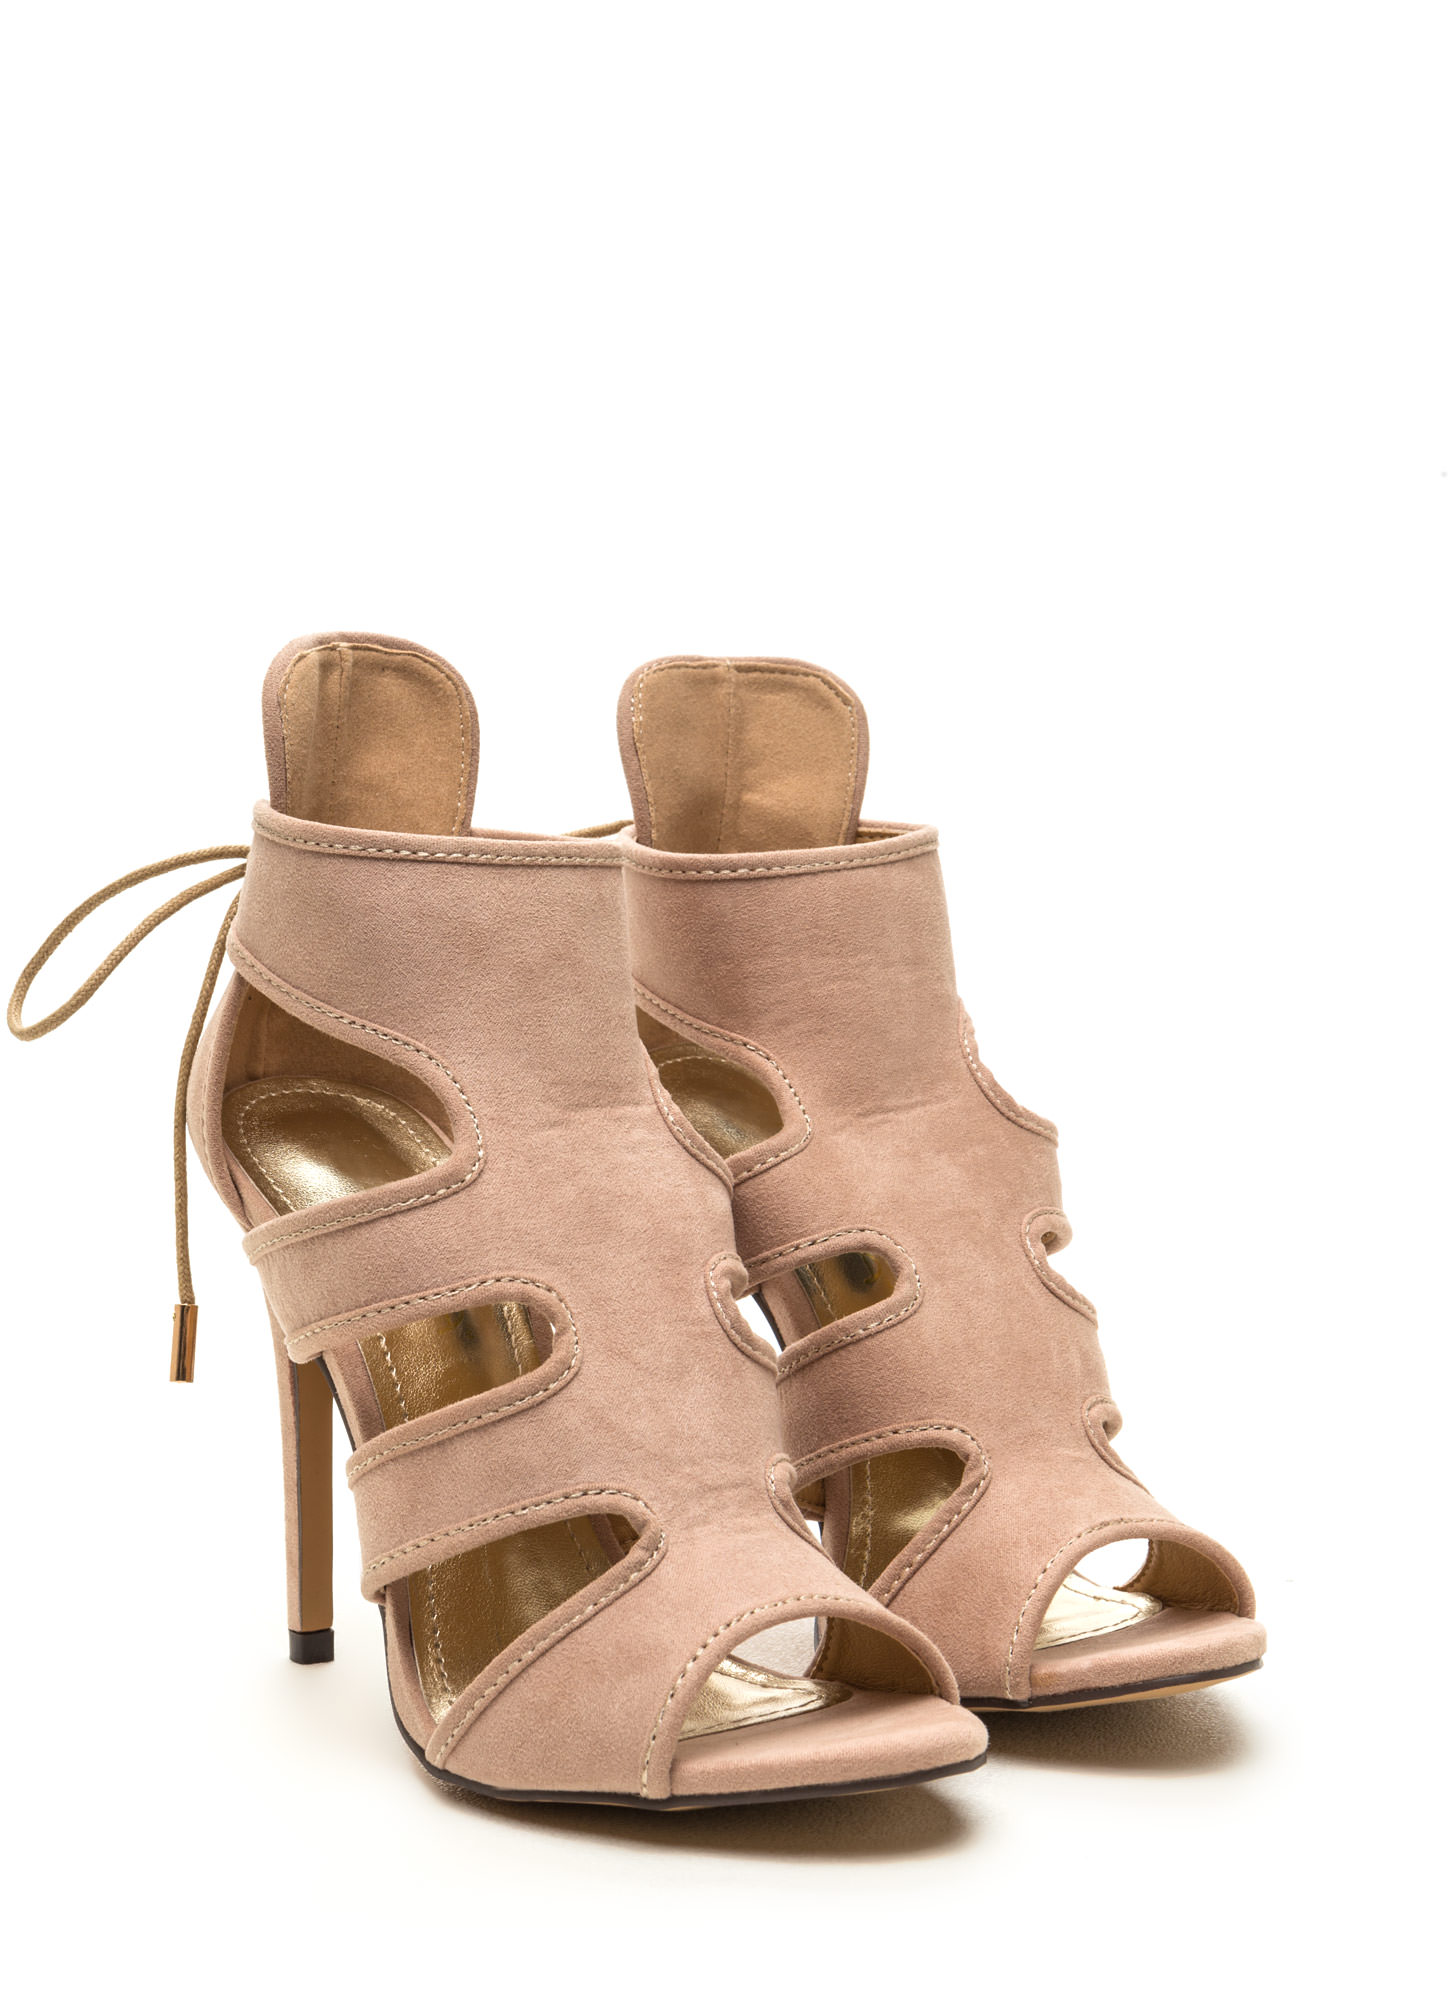 Around Town Caged Faux Suede Heels NUDE